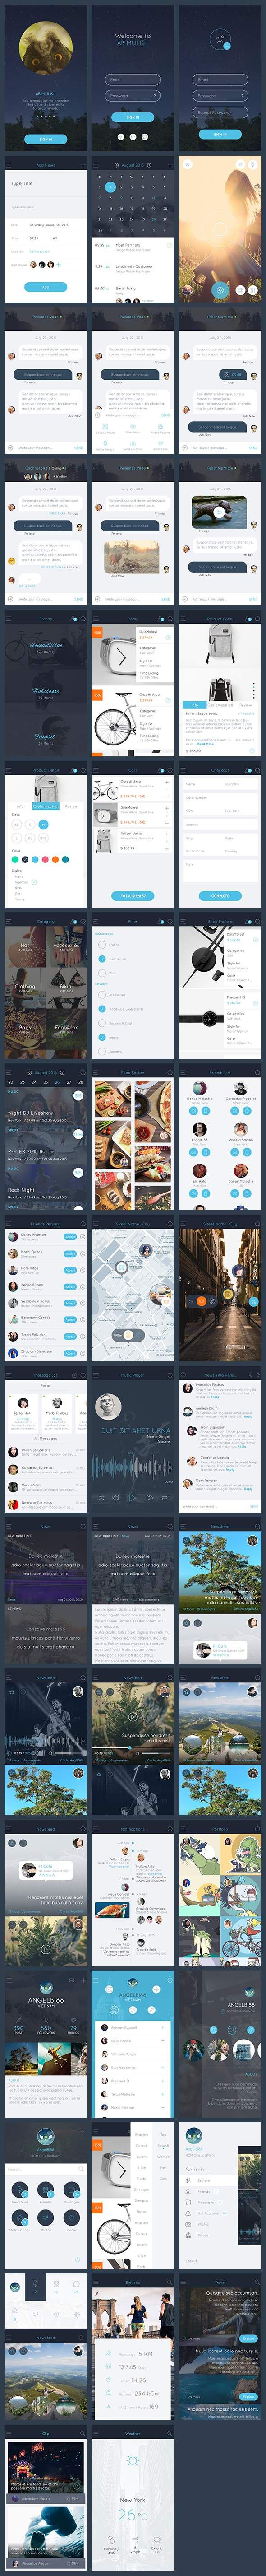 app, app design, bundle, ios 8, ios 9, iphone 6, minimalist, mobile, quality, ui, ui design, ui kit, ux